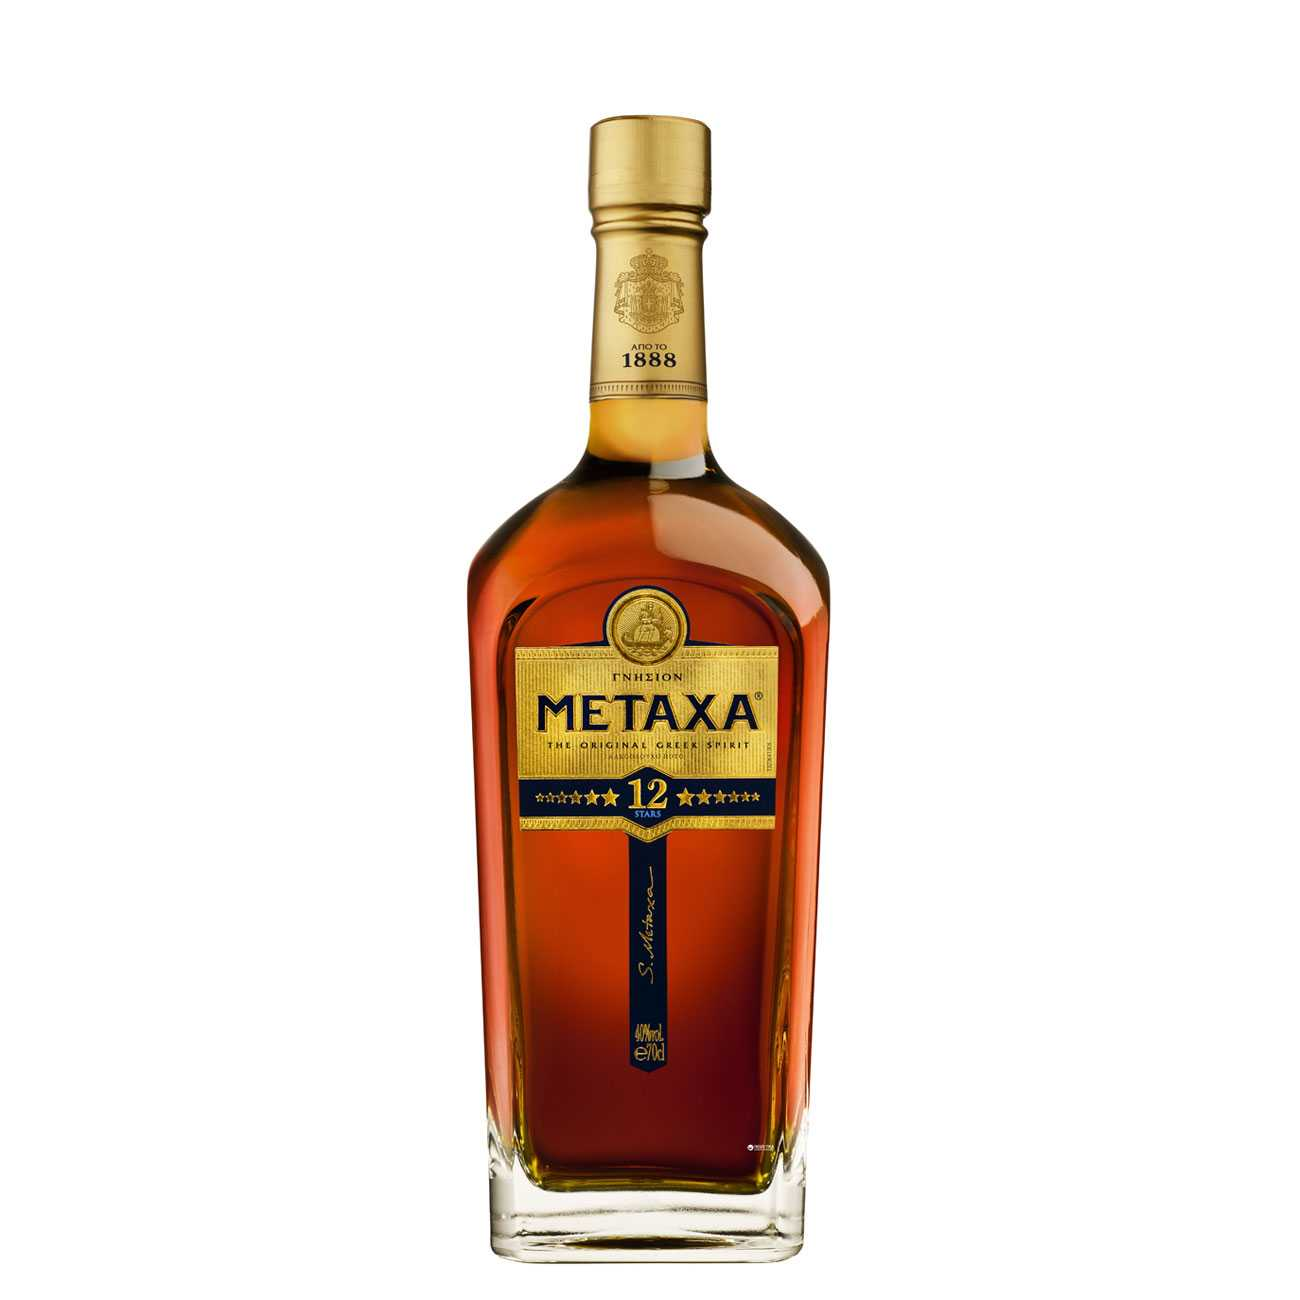 12 Star Grand Oliympian Reserve 700 Ml de la Metaxa